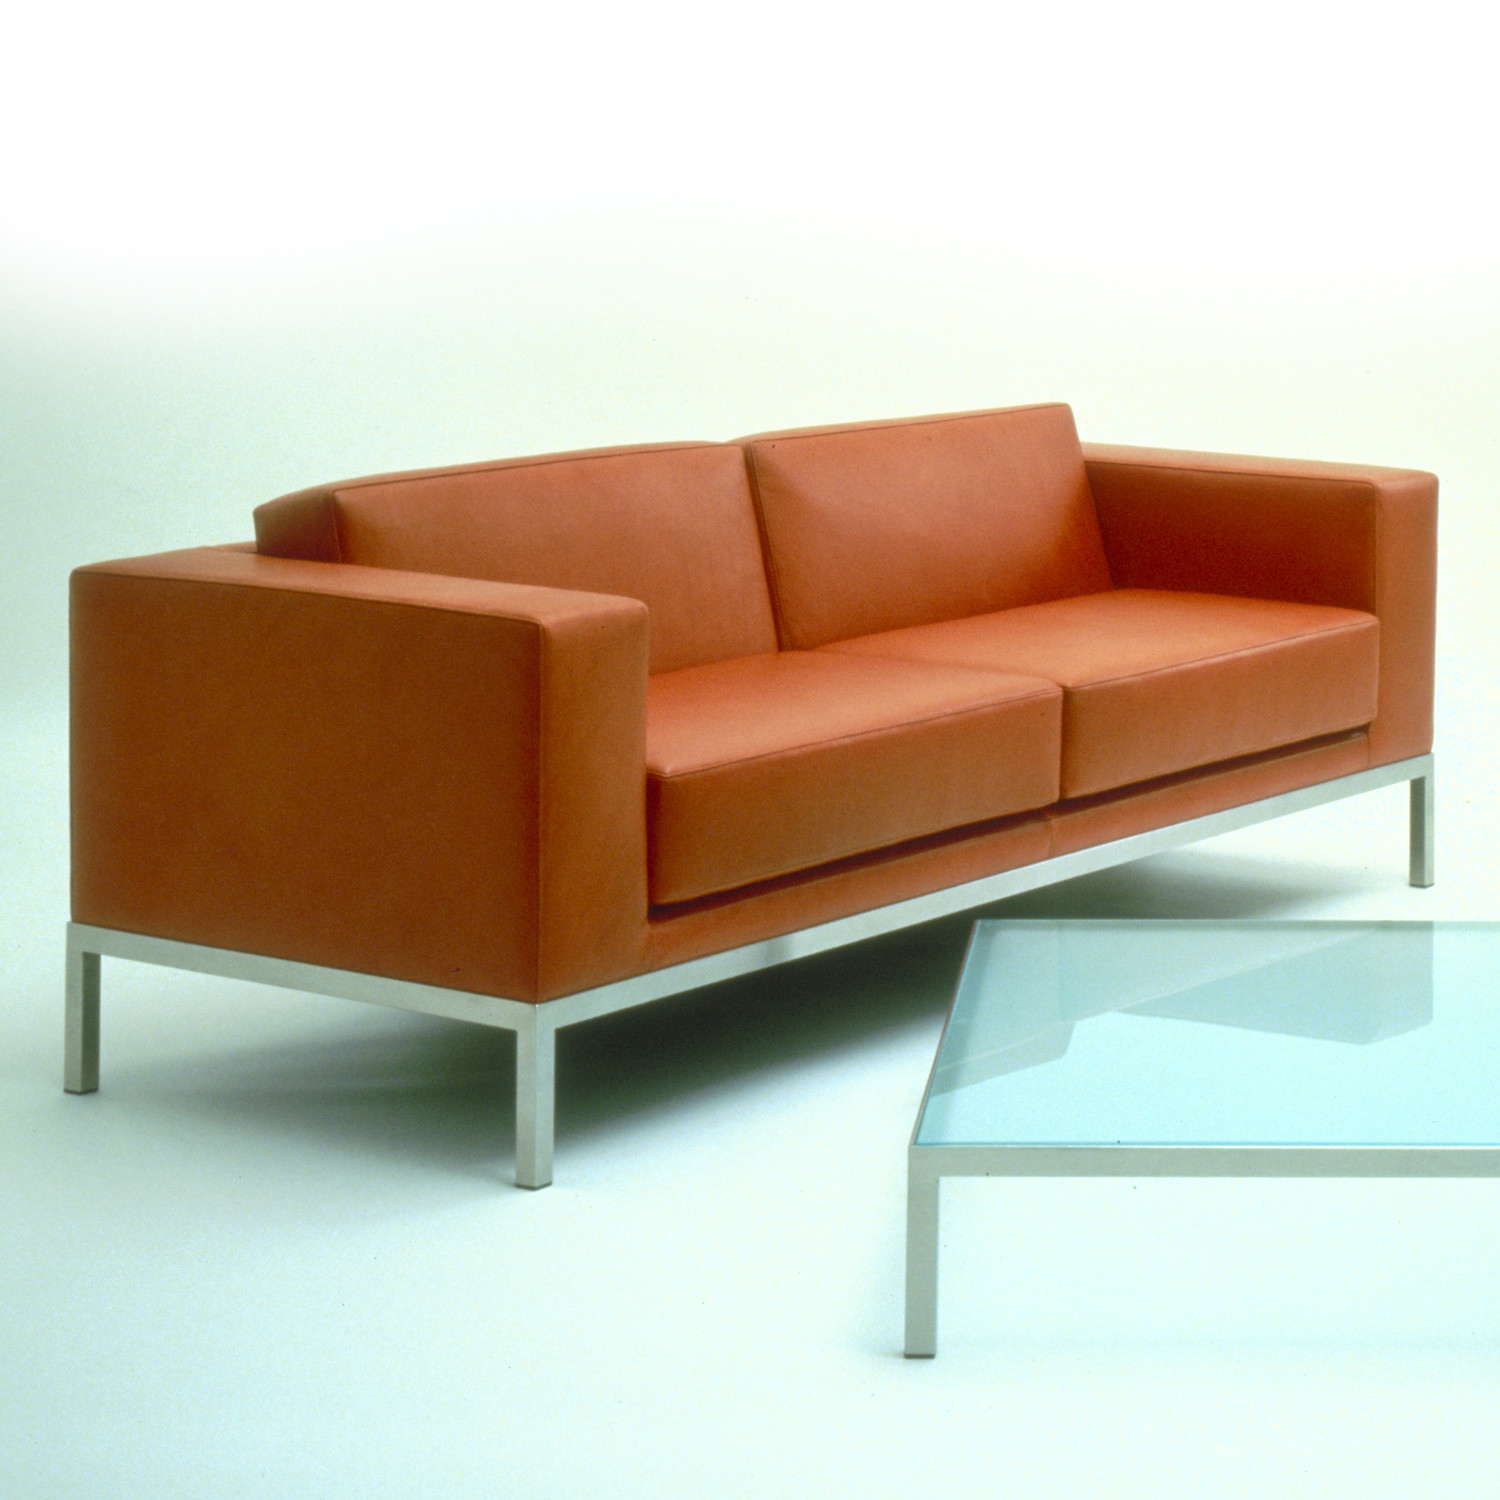 HM25 Leather Upholstered Sofa